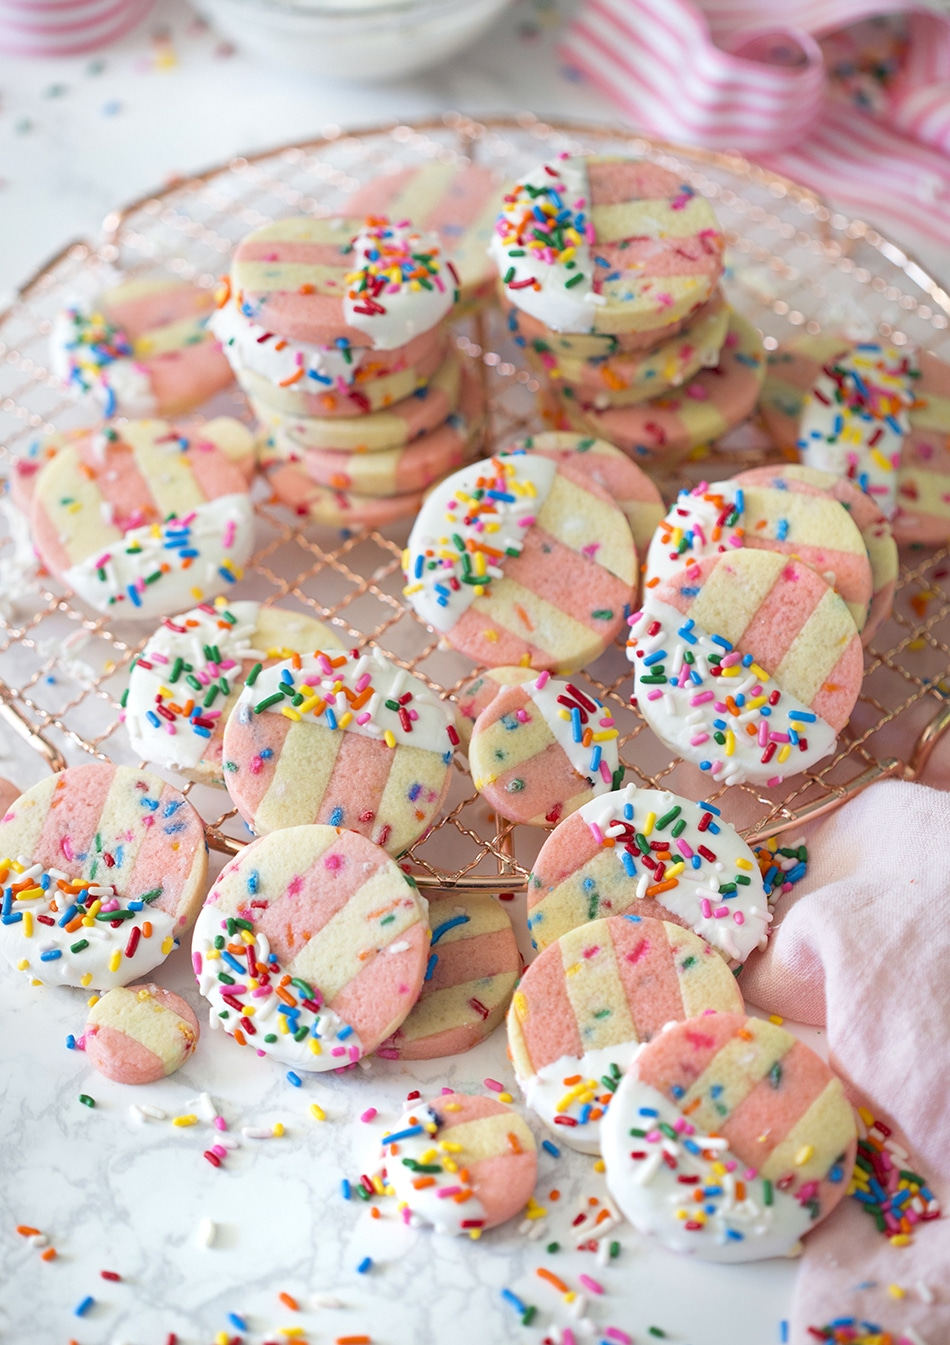 Photo showing pink and white striped funfetti cookies on a marble table.